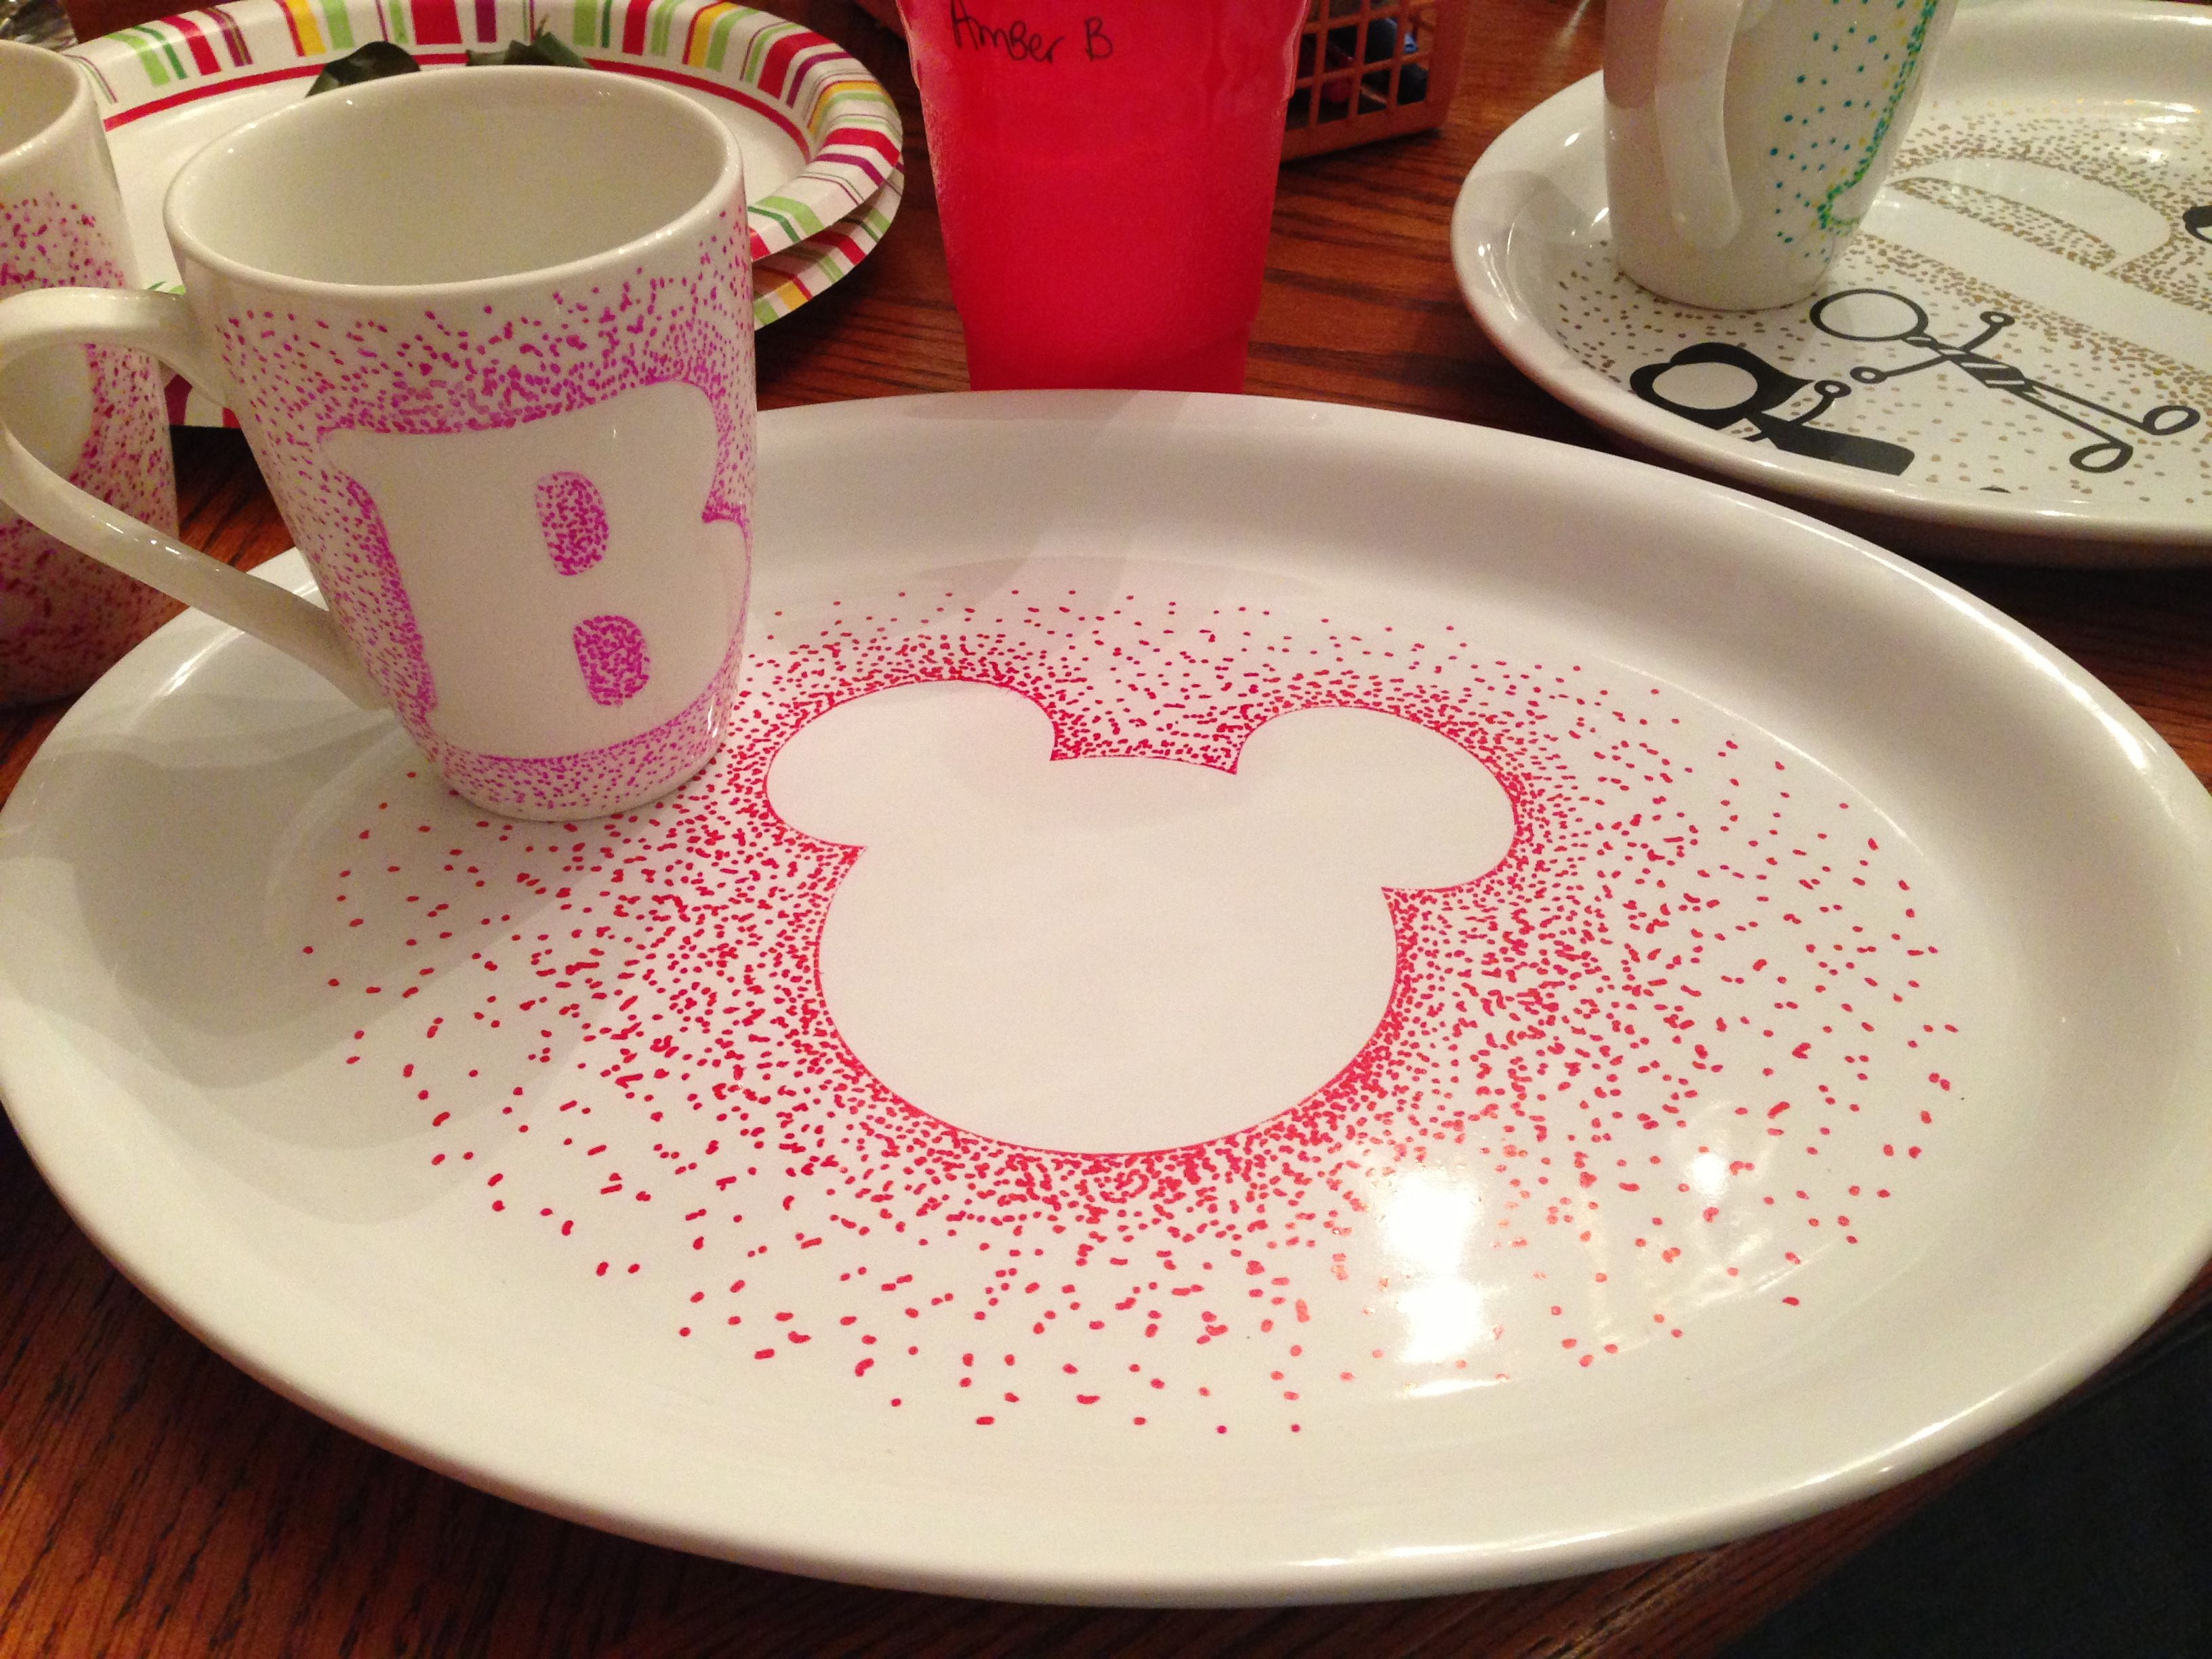 stippled plate and mug-going to take mickey plate to Disney and get fab 5 to autograph as a keepsake for me to display! Used sharpies then baked in oven to seal.